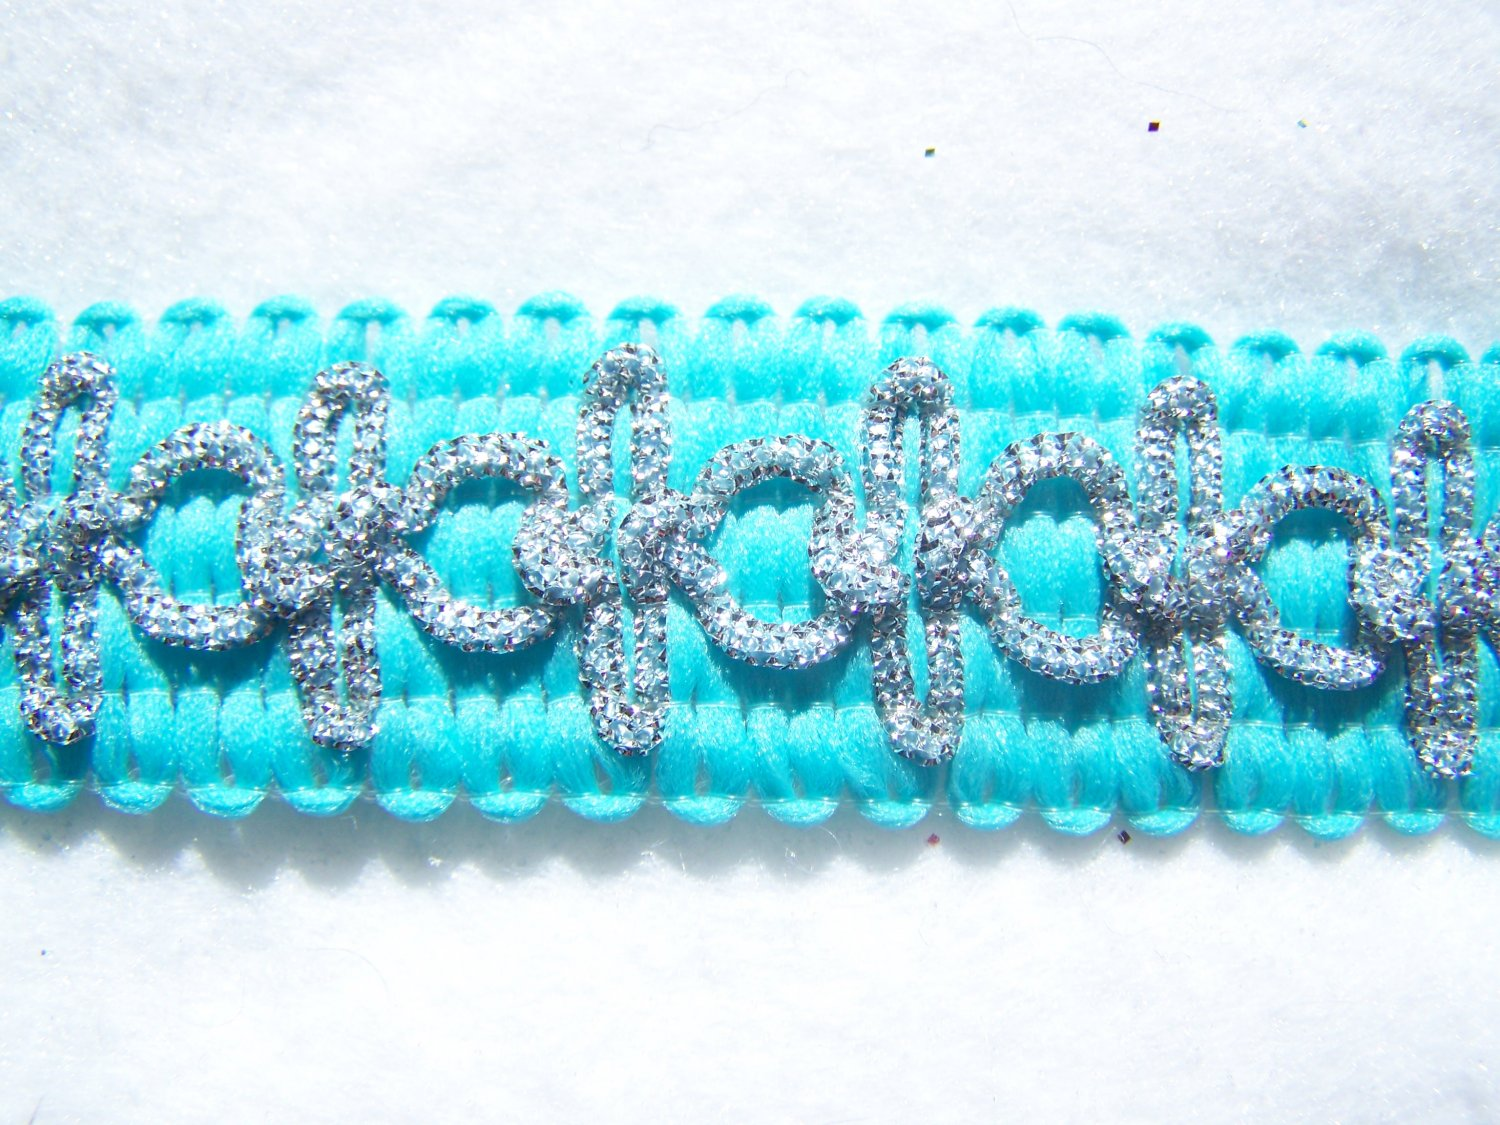 "Vintage Aqua Teal Gimp Lace Trim with Silver Metallic Cord 1 Yard x 1"" wide"